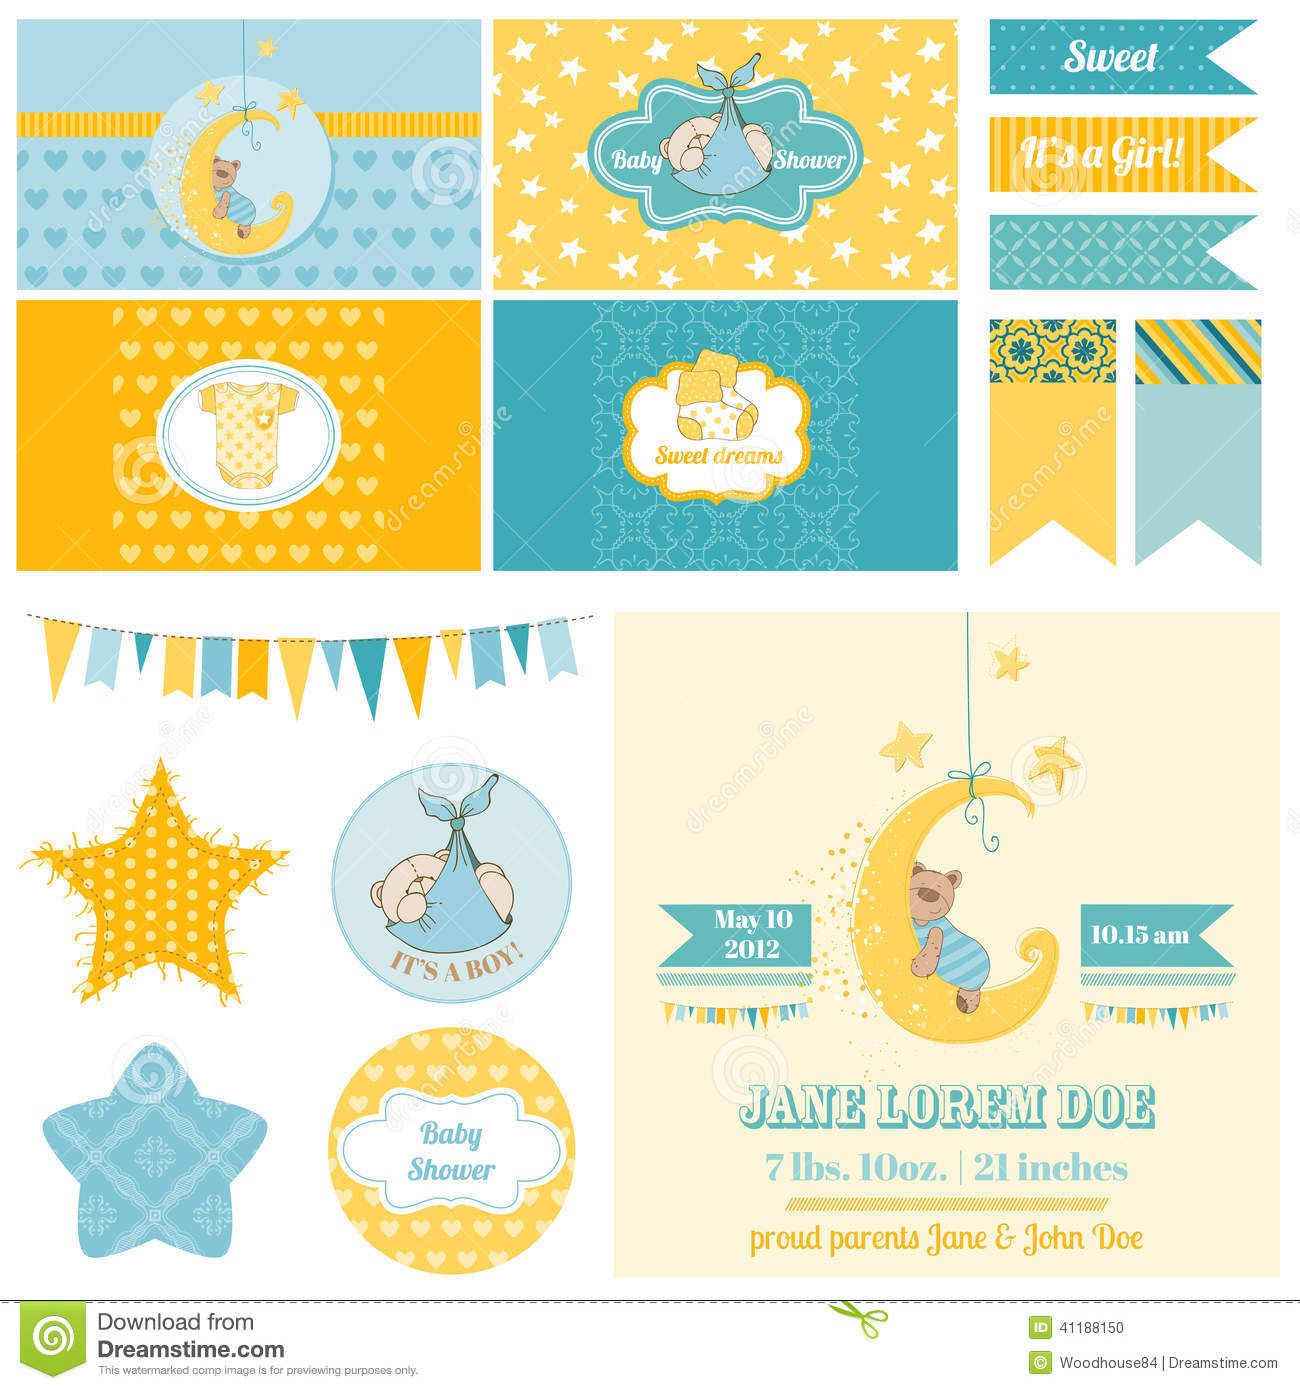 Baby Welcome Party Invitation for awesome invitations ideas